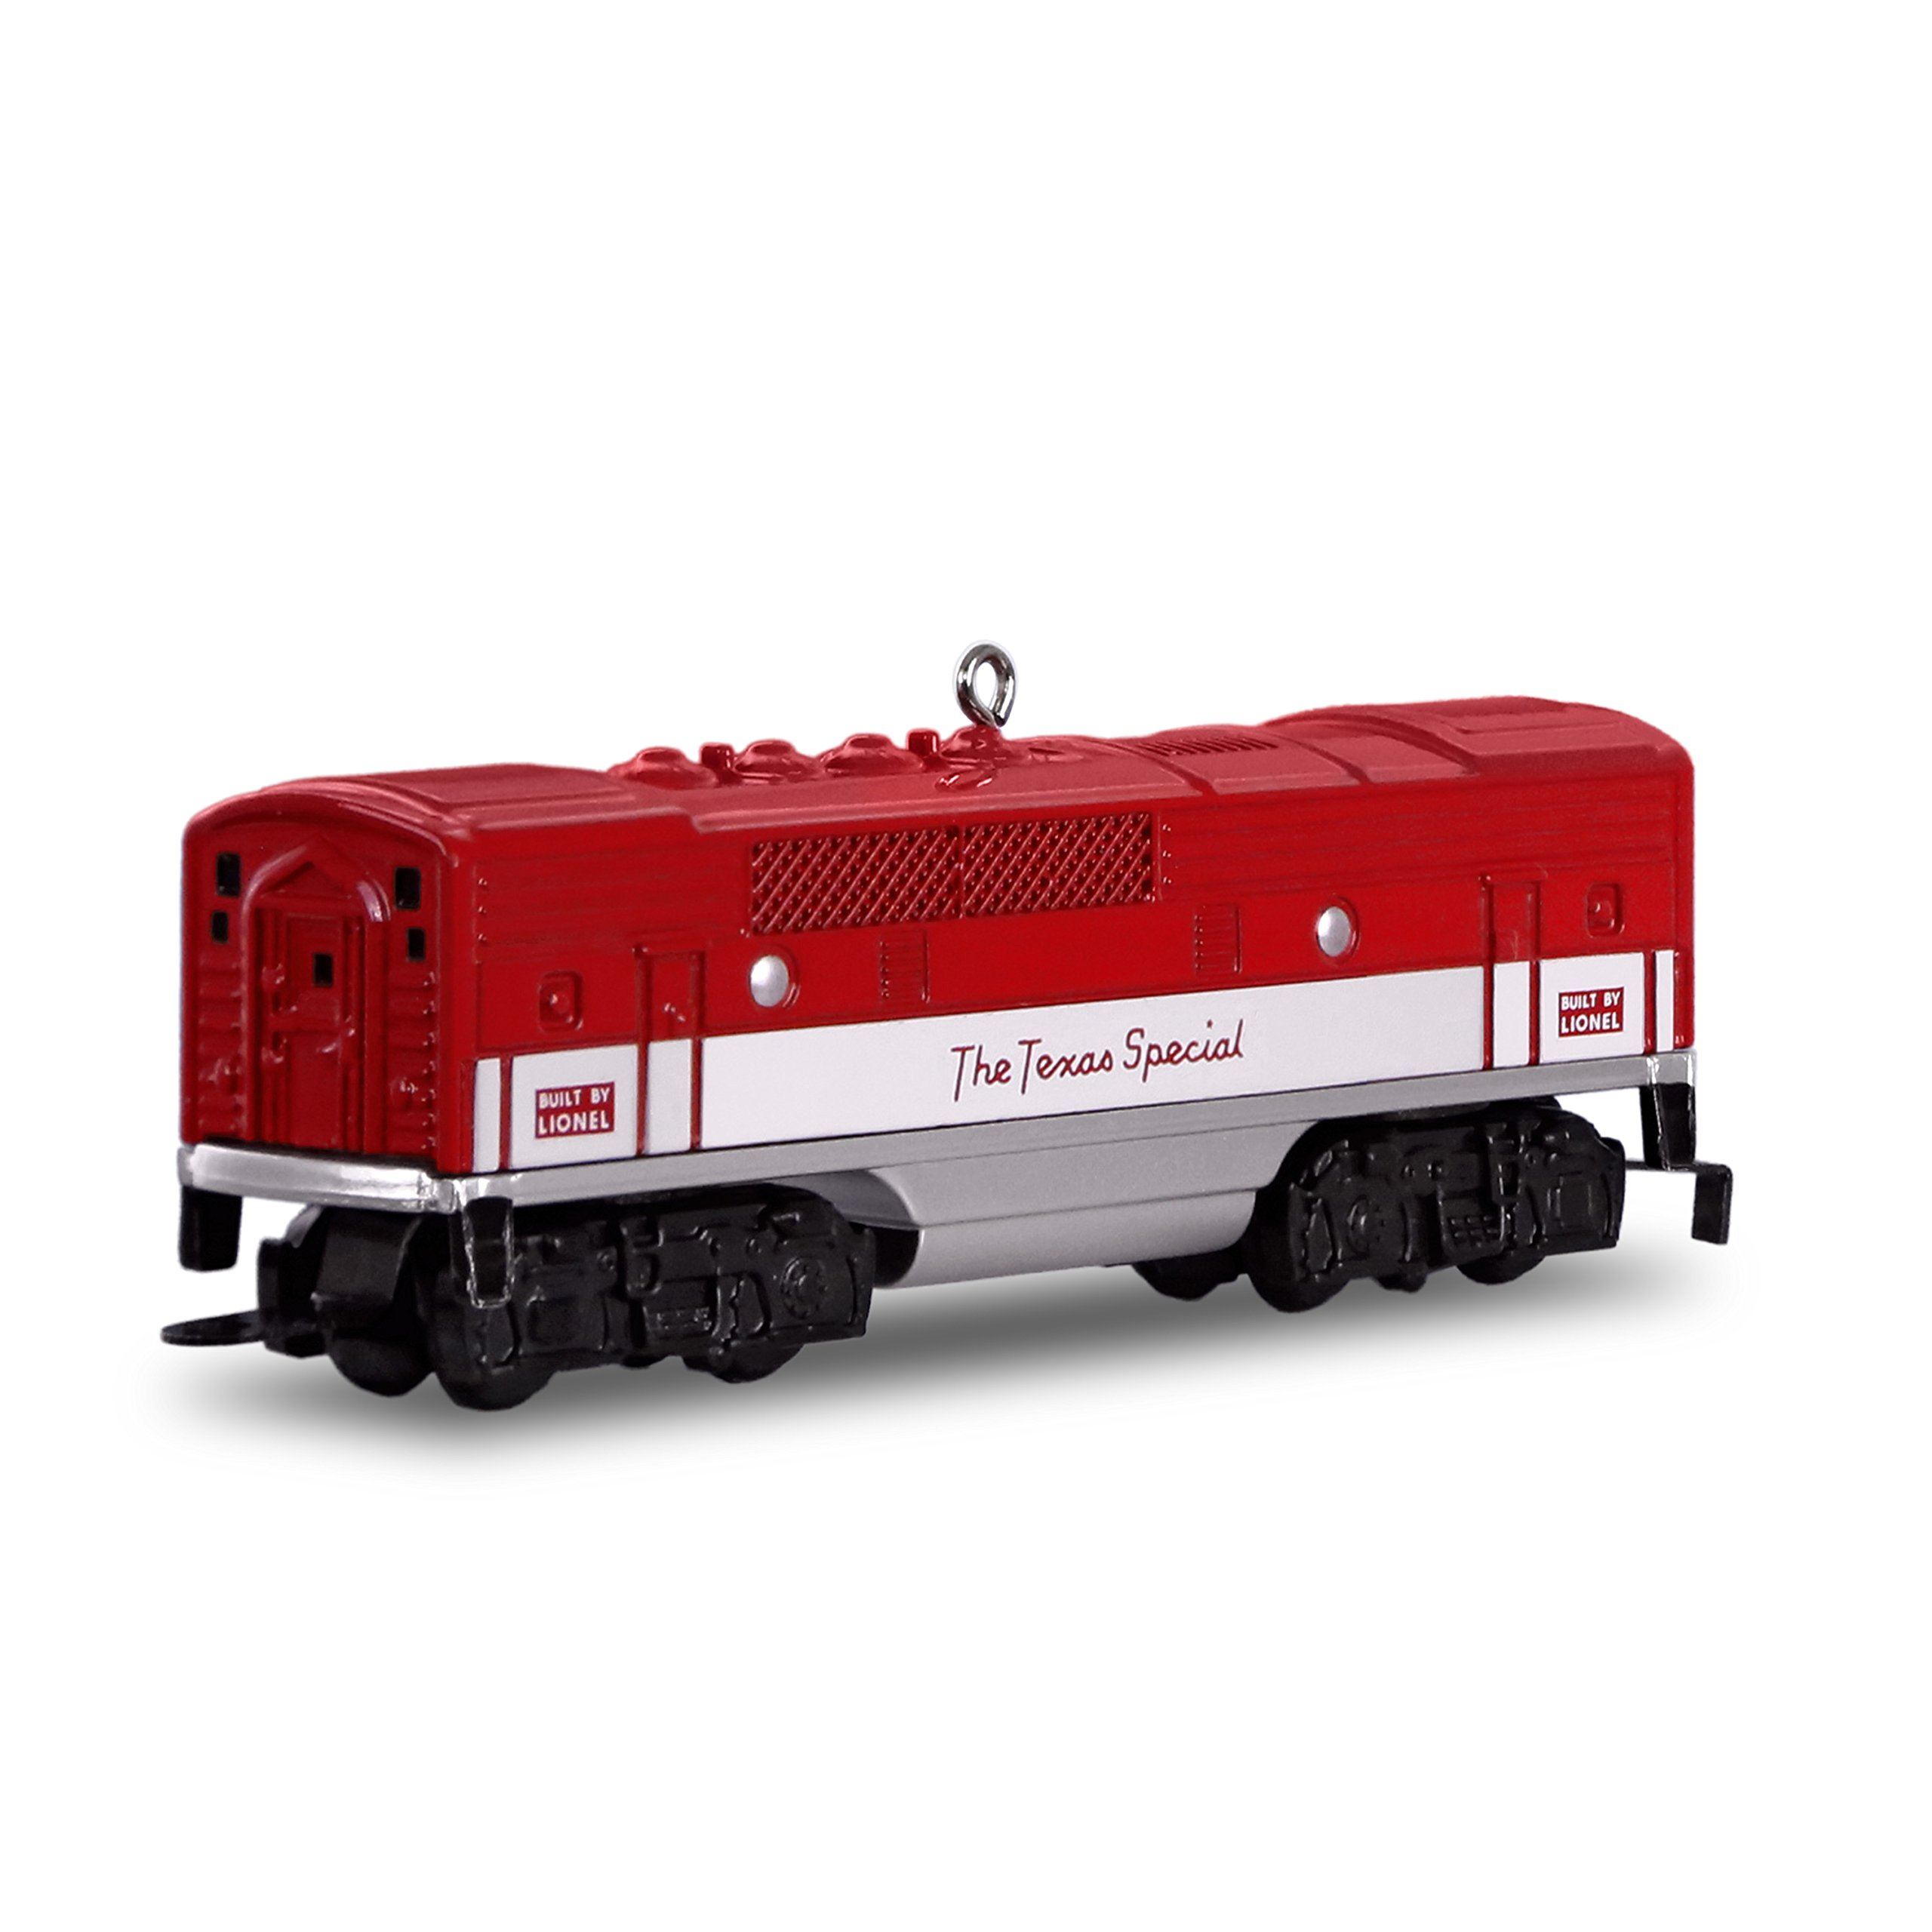 "Hallmark Keepsake Christmas Ornament 2018 Year Dated, LIONEL 2245C Texas Special ""B"" Unit, Metal"